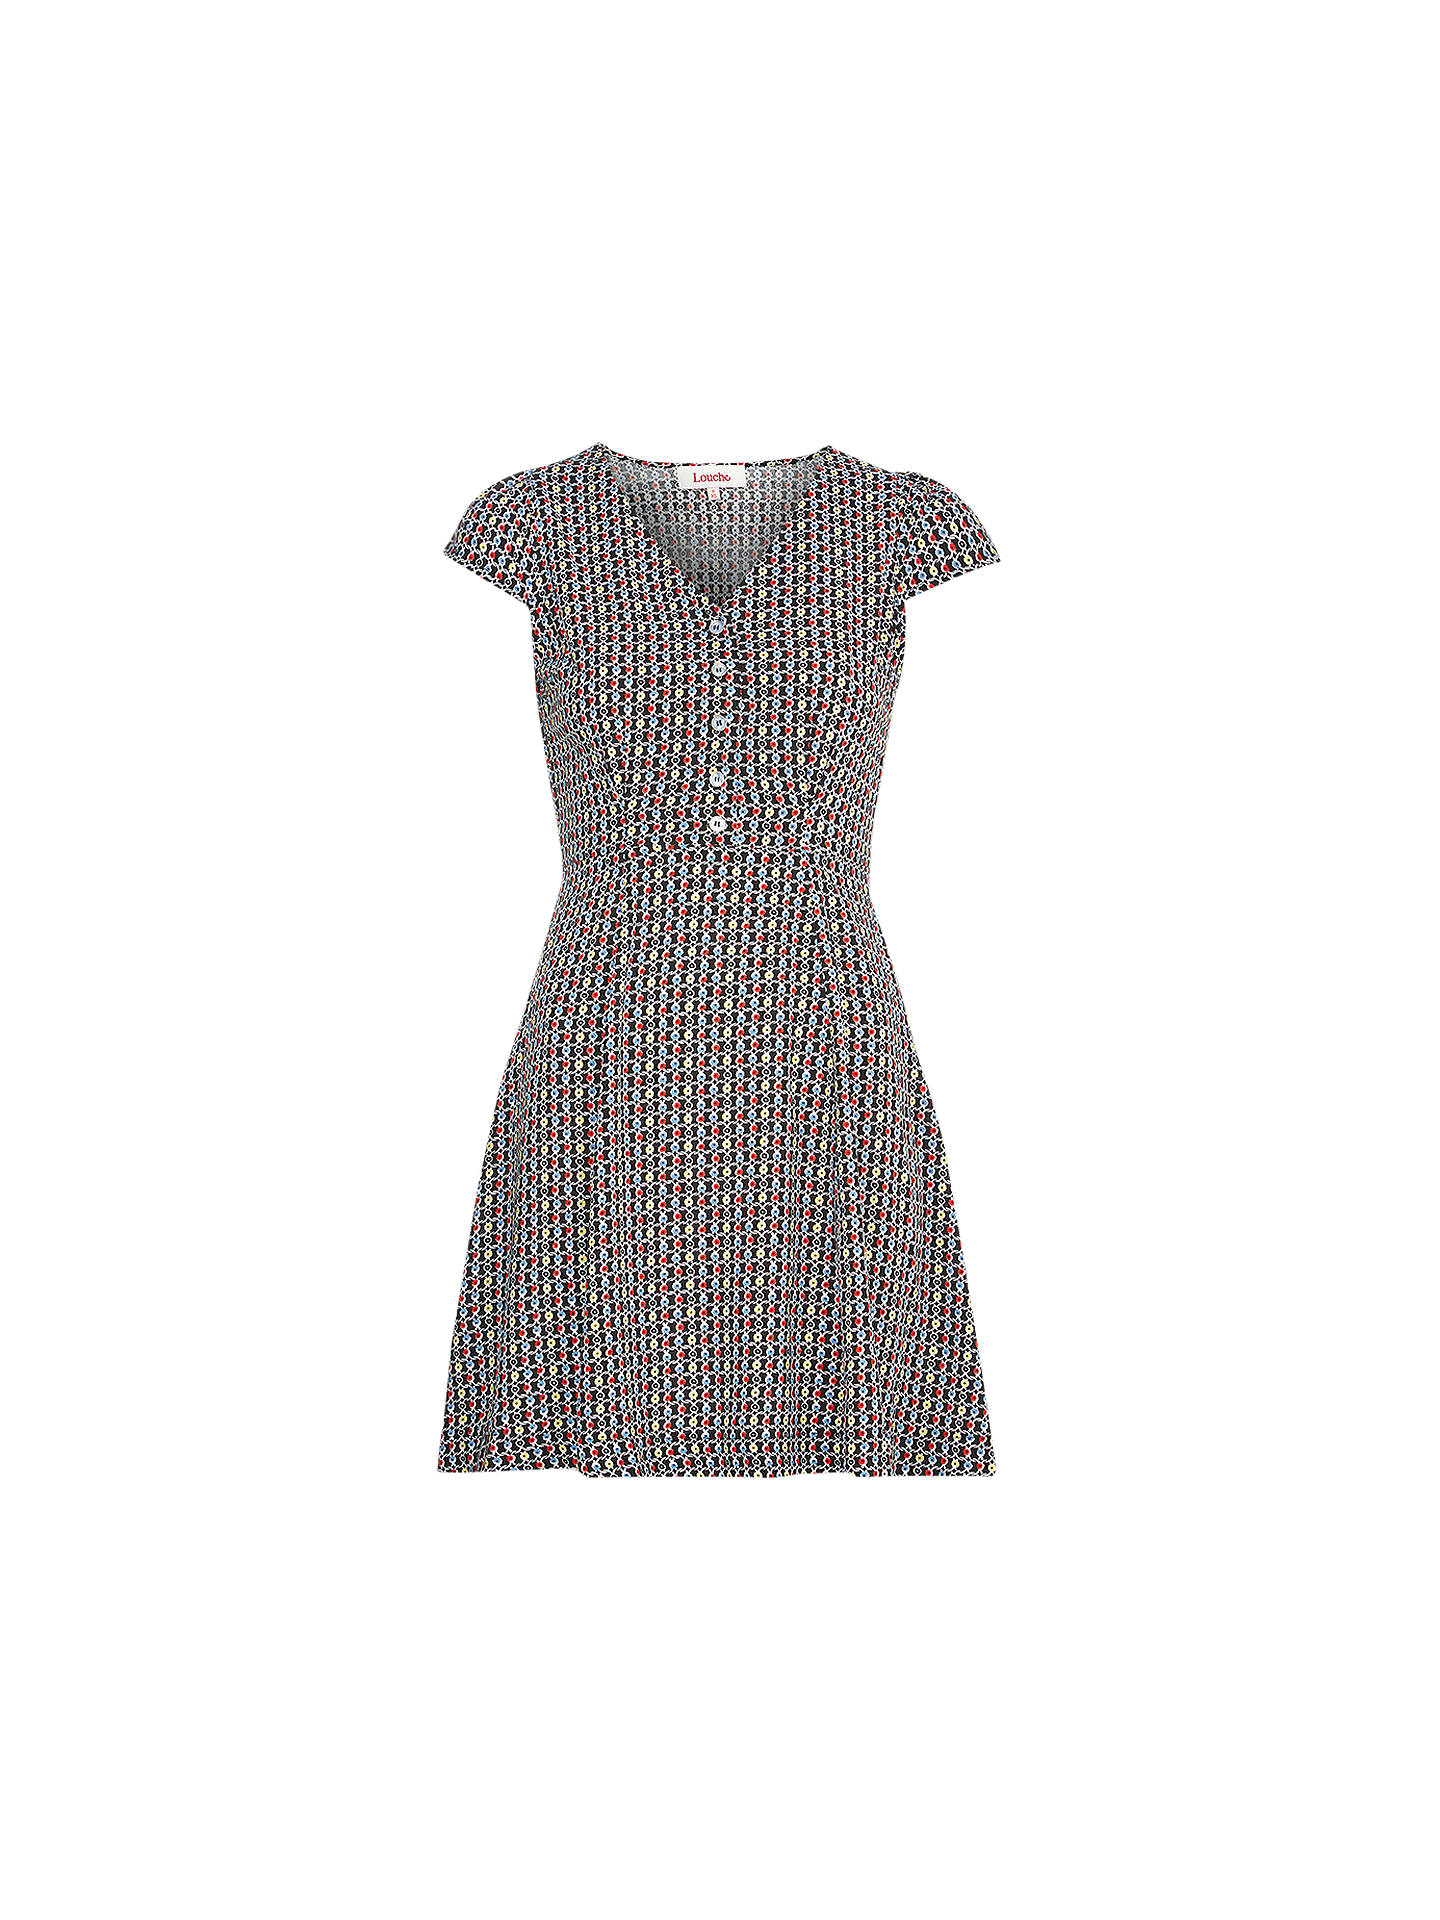 417522ef2c0f Buy Louche Cathleen Twine Print Dress, Multi, 8 Online at johnlewis.com ...